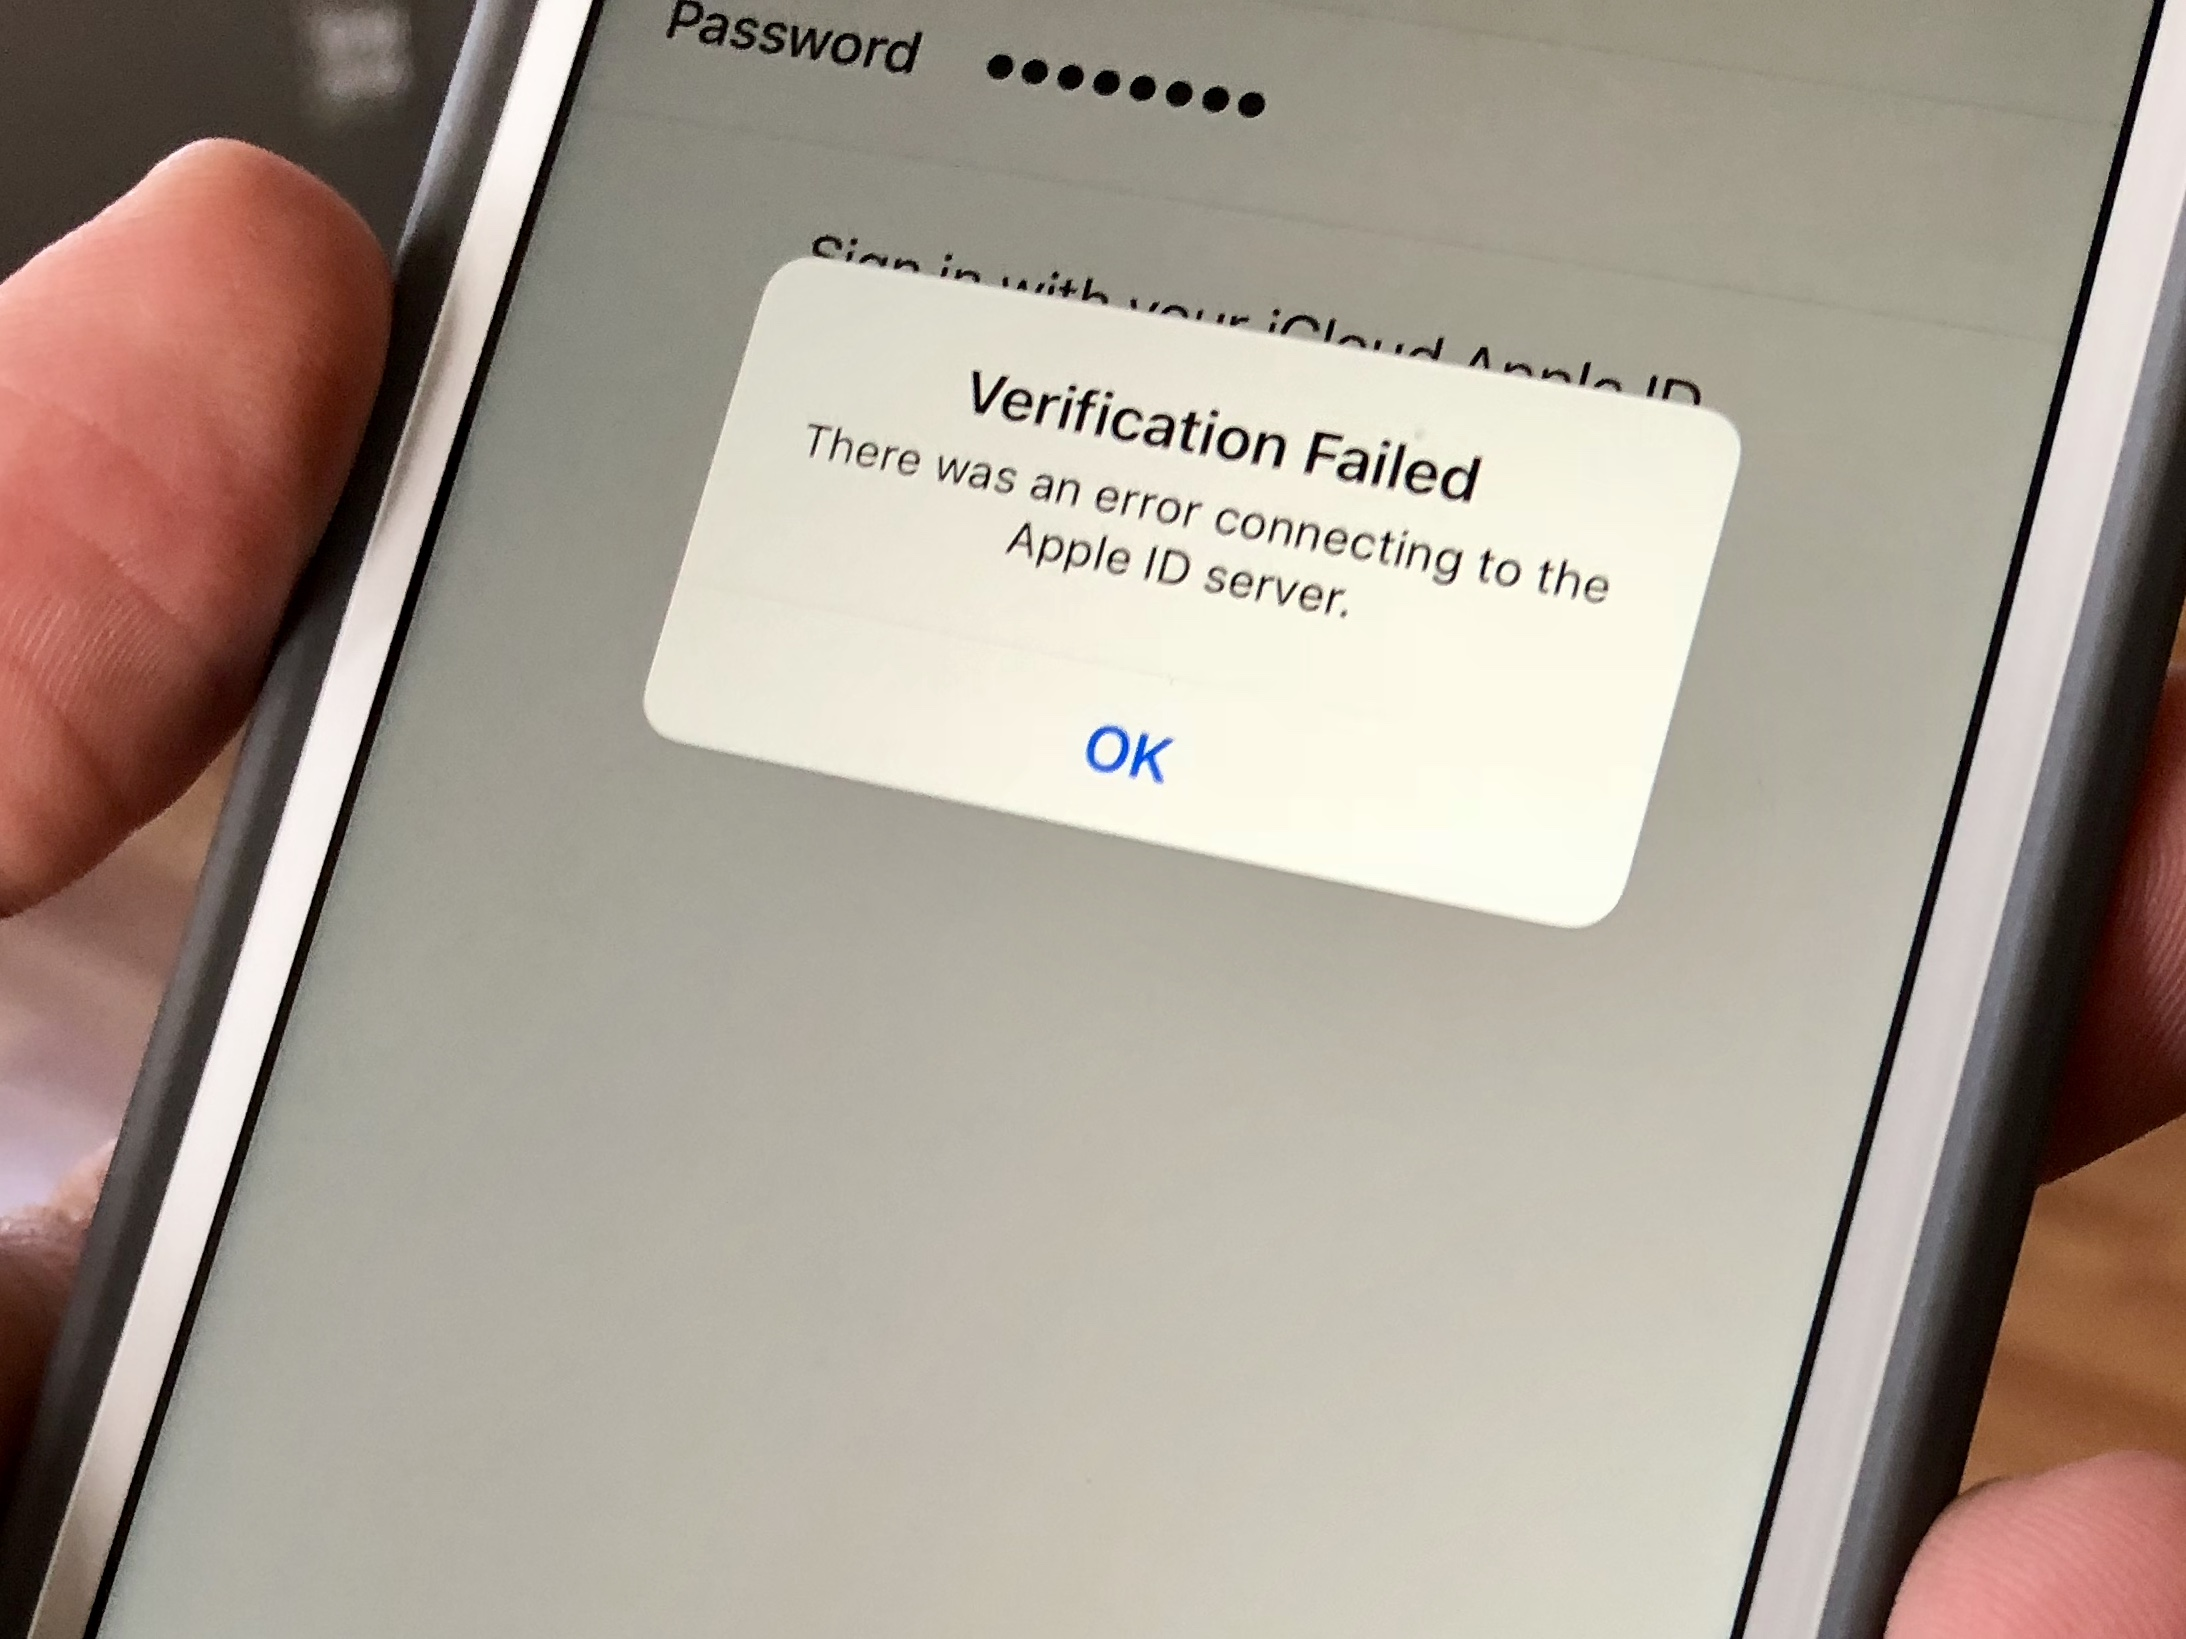 How to fix the annoying Apple ID Server error on iPhone or iPad.